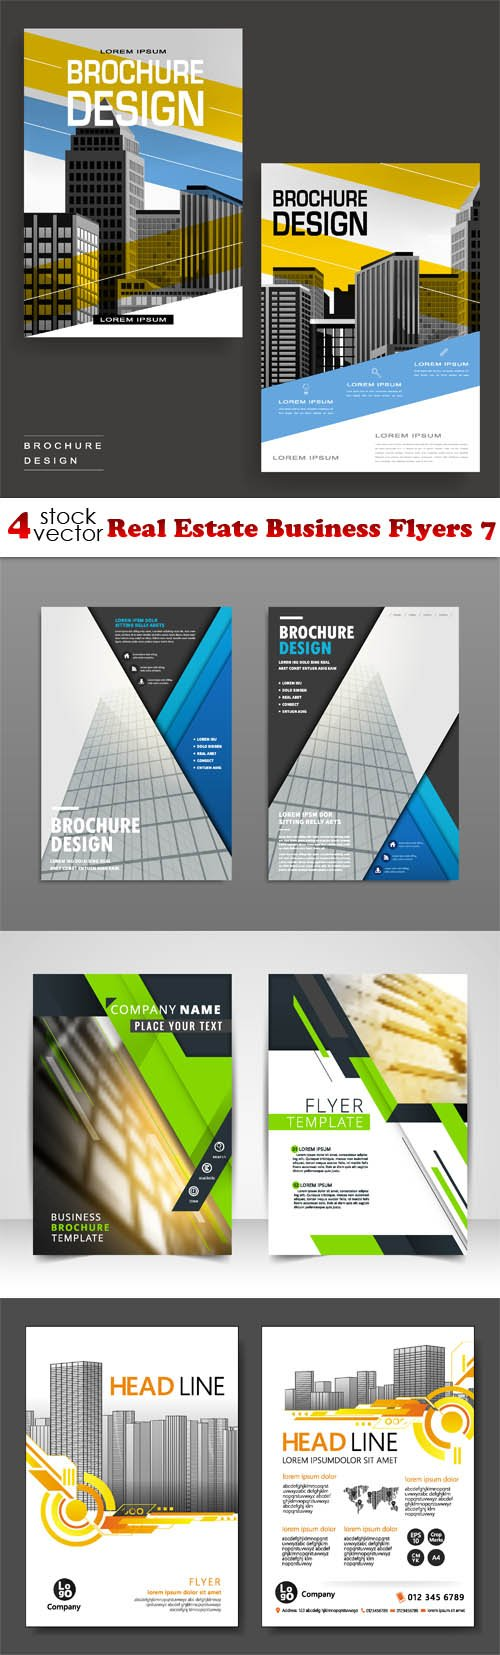 Vectors - Real Estate Business Flyers 7